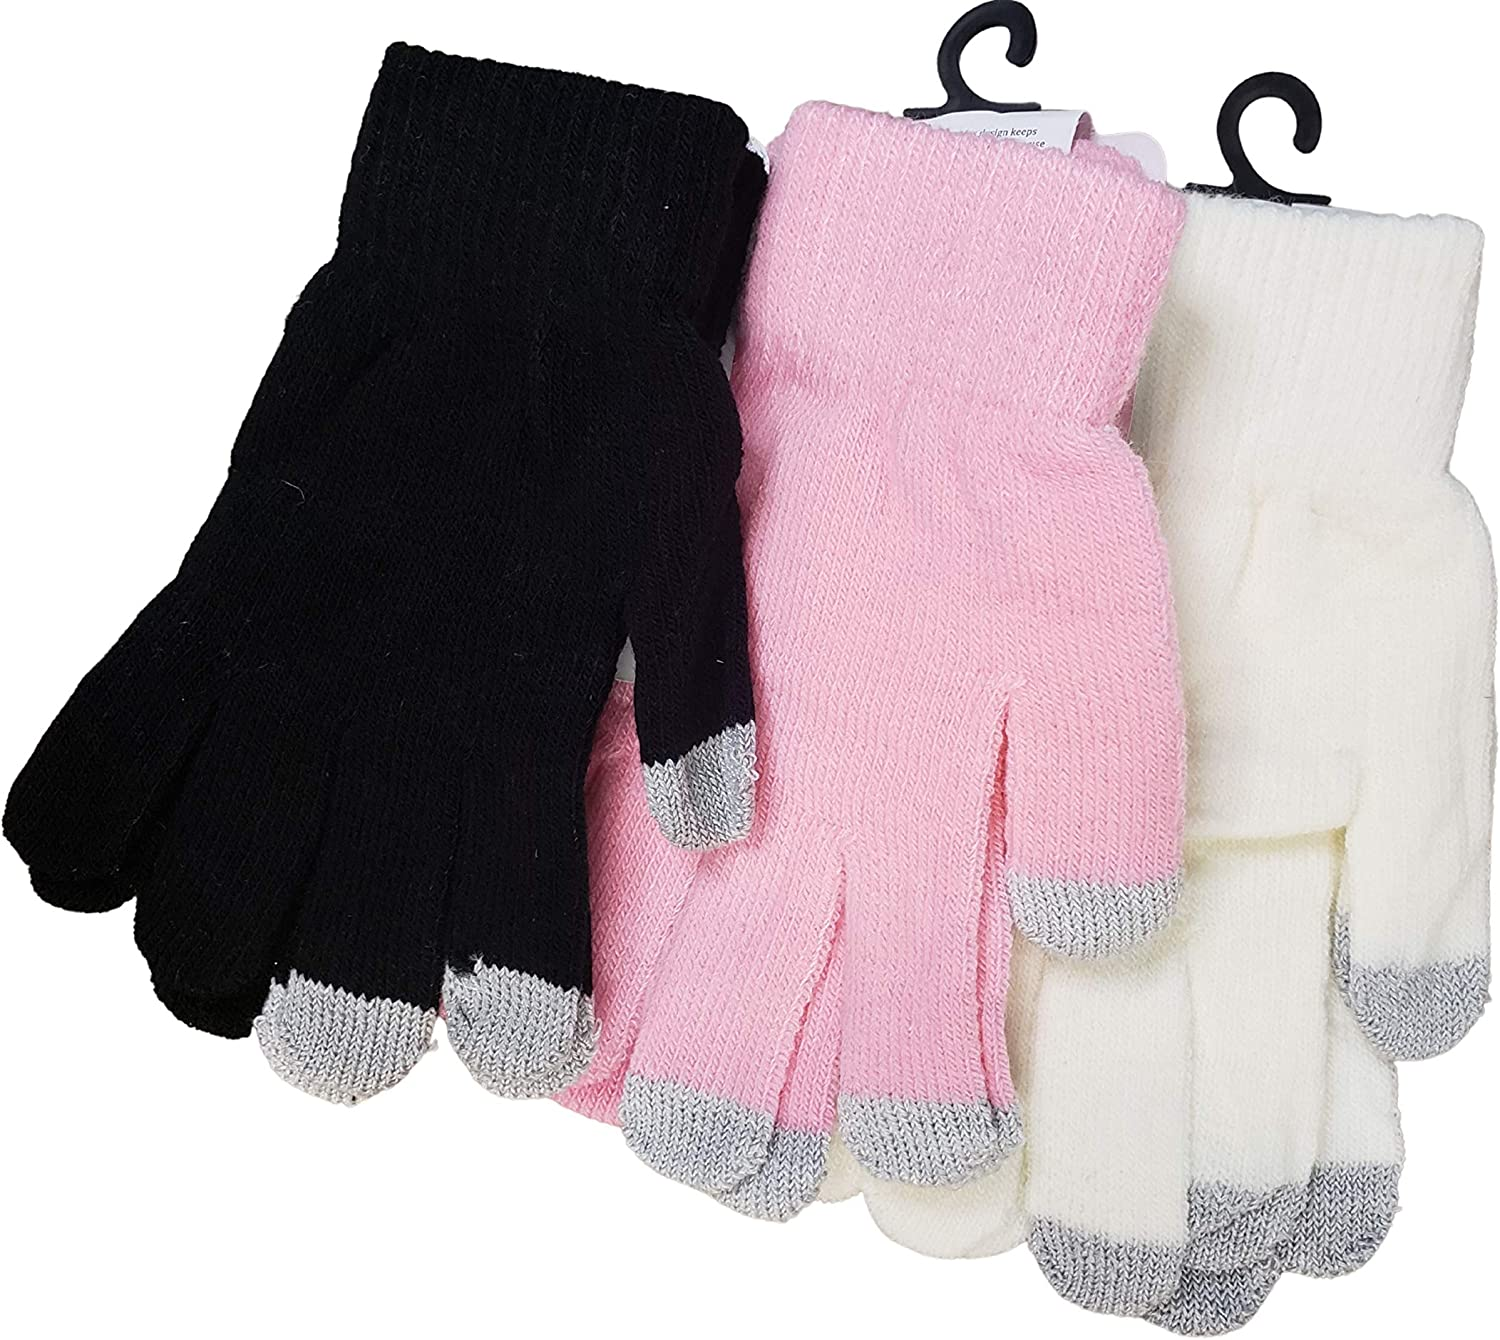 Touchscreen Winter Gloves for Cellphone Electronics-Soft and Stretchy-Set of 3: black, pink, white